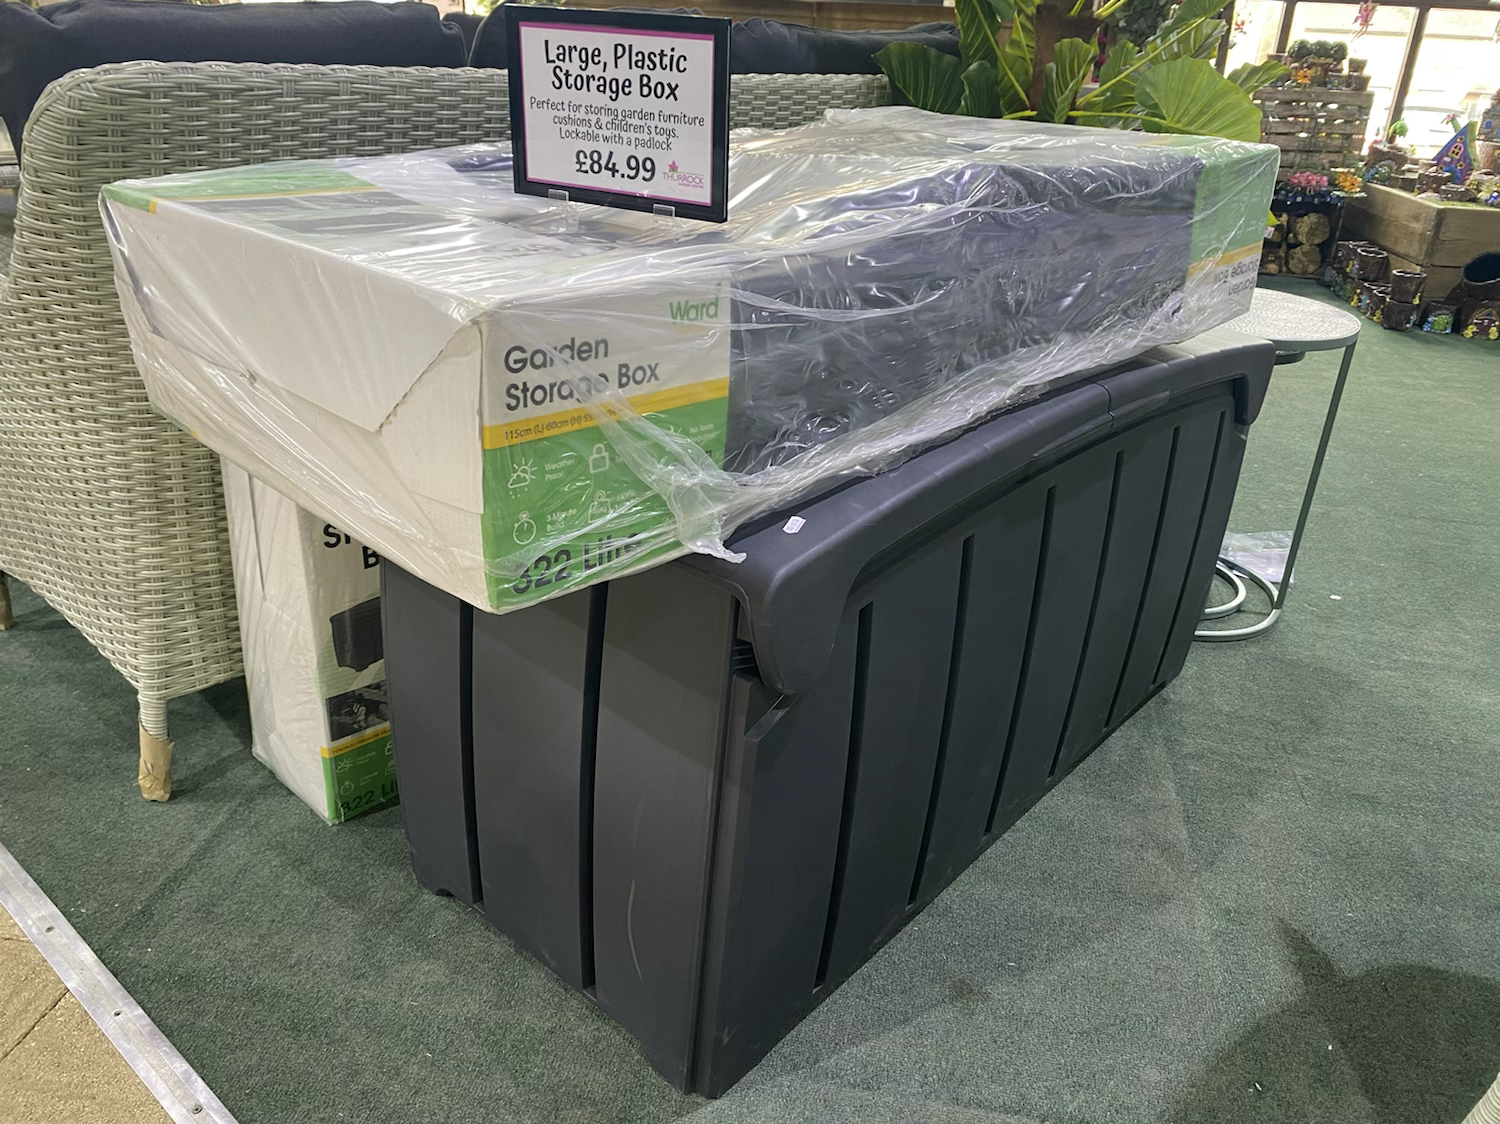 Large Plastic Garden Storage Box - £84.99